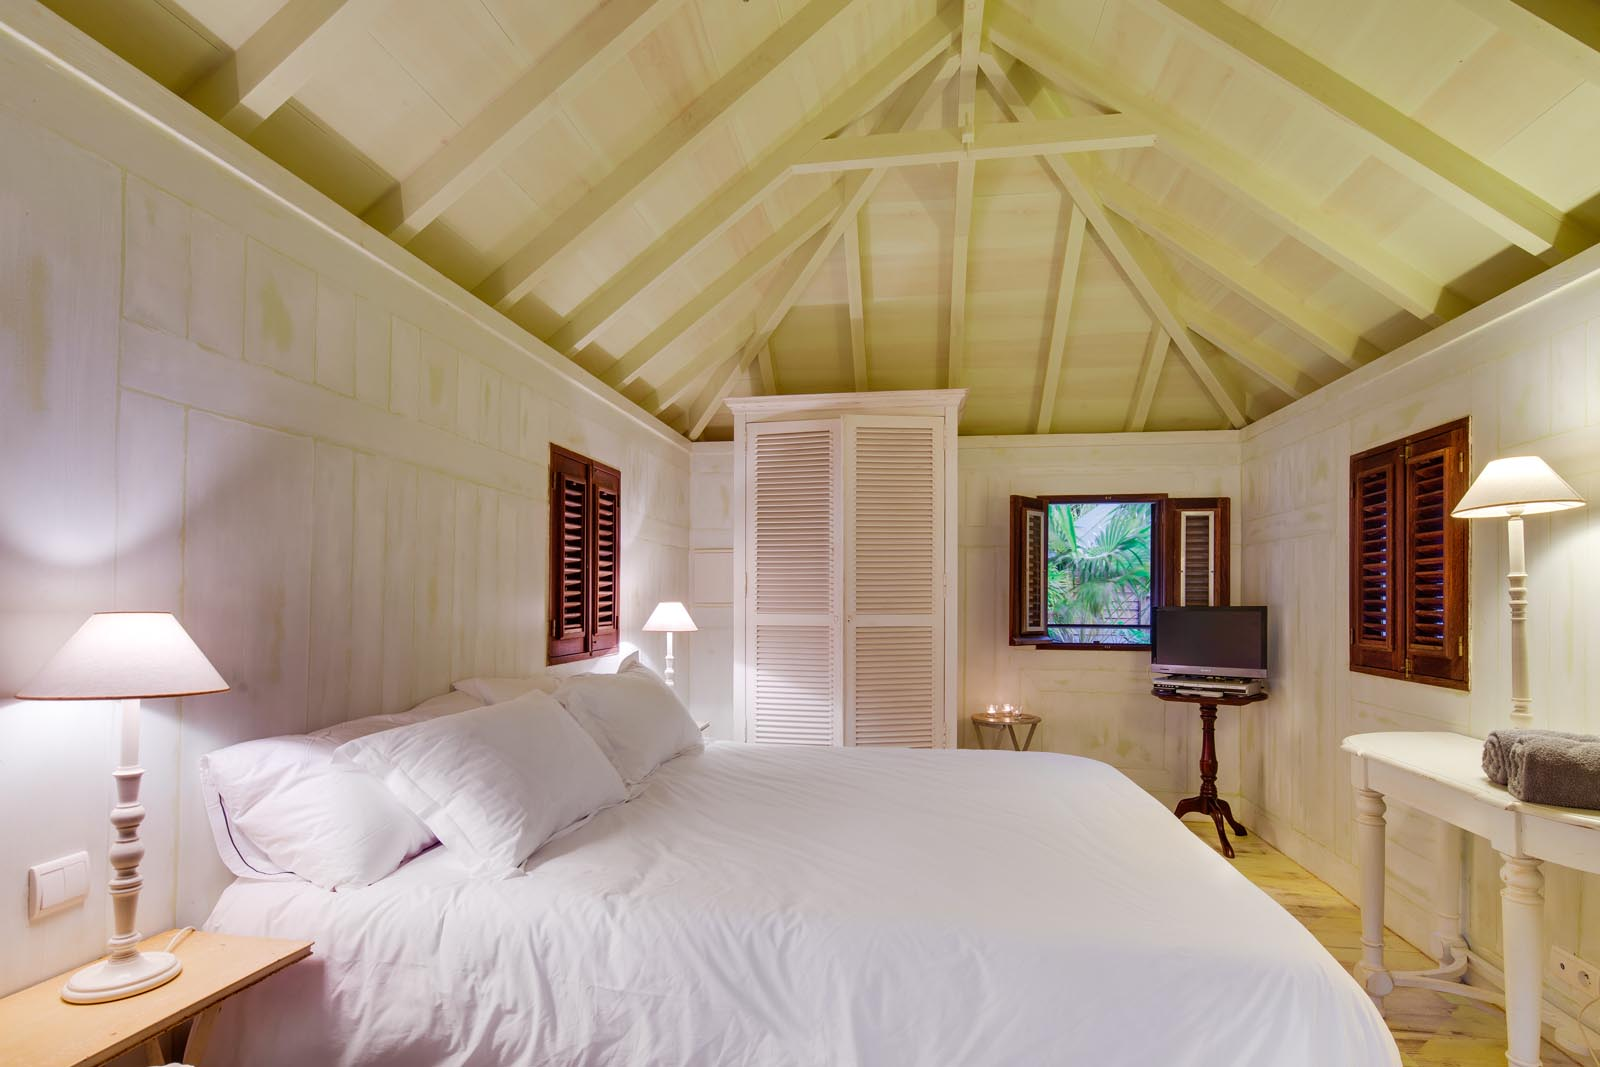 This St. Barths luxury villa rental has a total of 3 bedrooms each with private bathrooms.